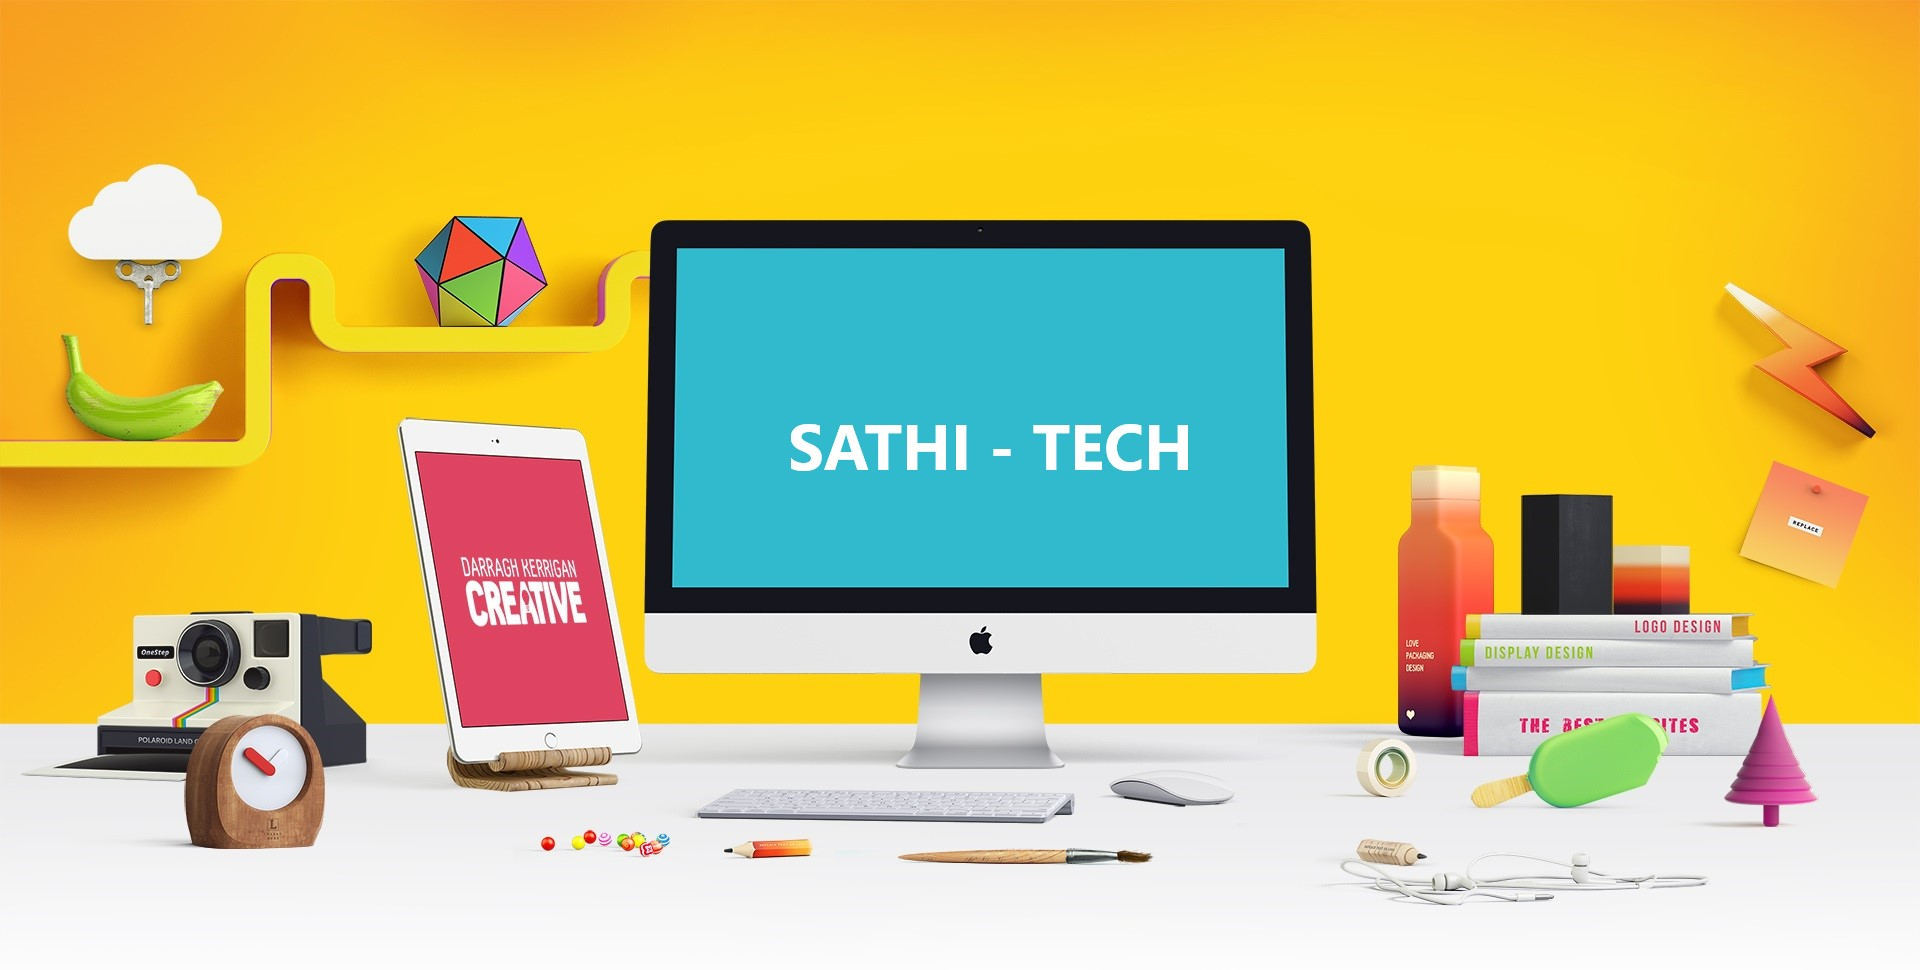 WELCOME TO SATHI – TECH